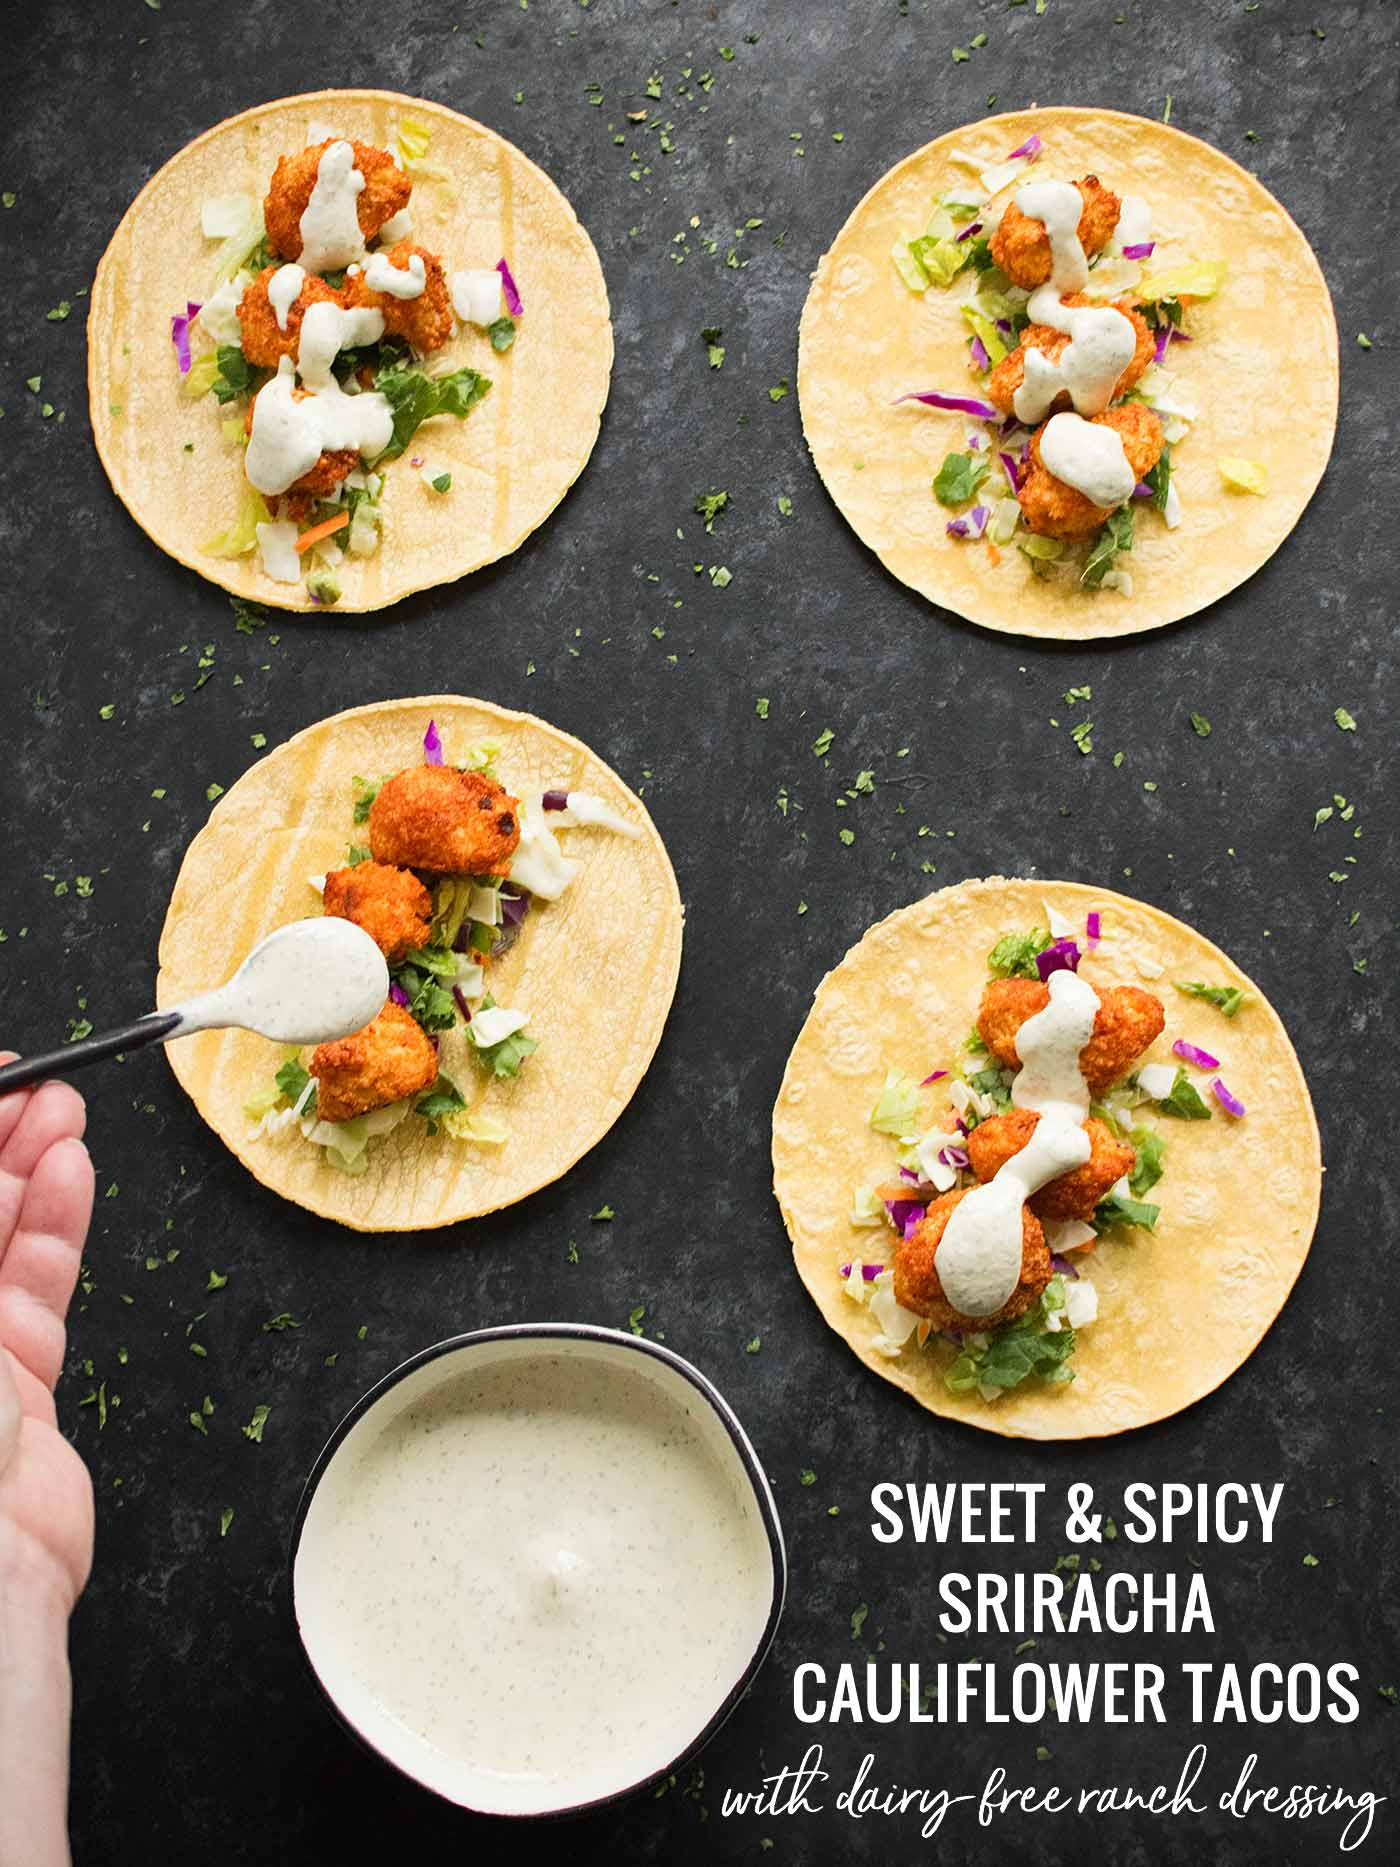 Sweet & Spicy Cauliflower Tacos - Recipe at SoupAddict.com